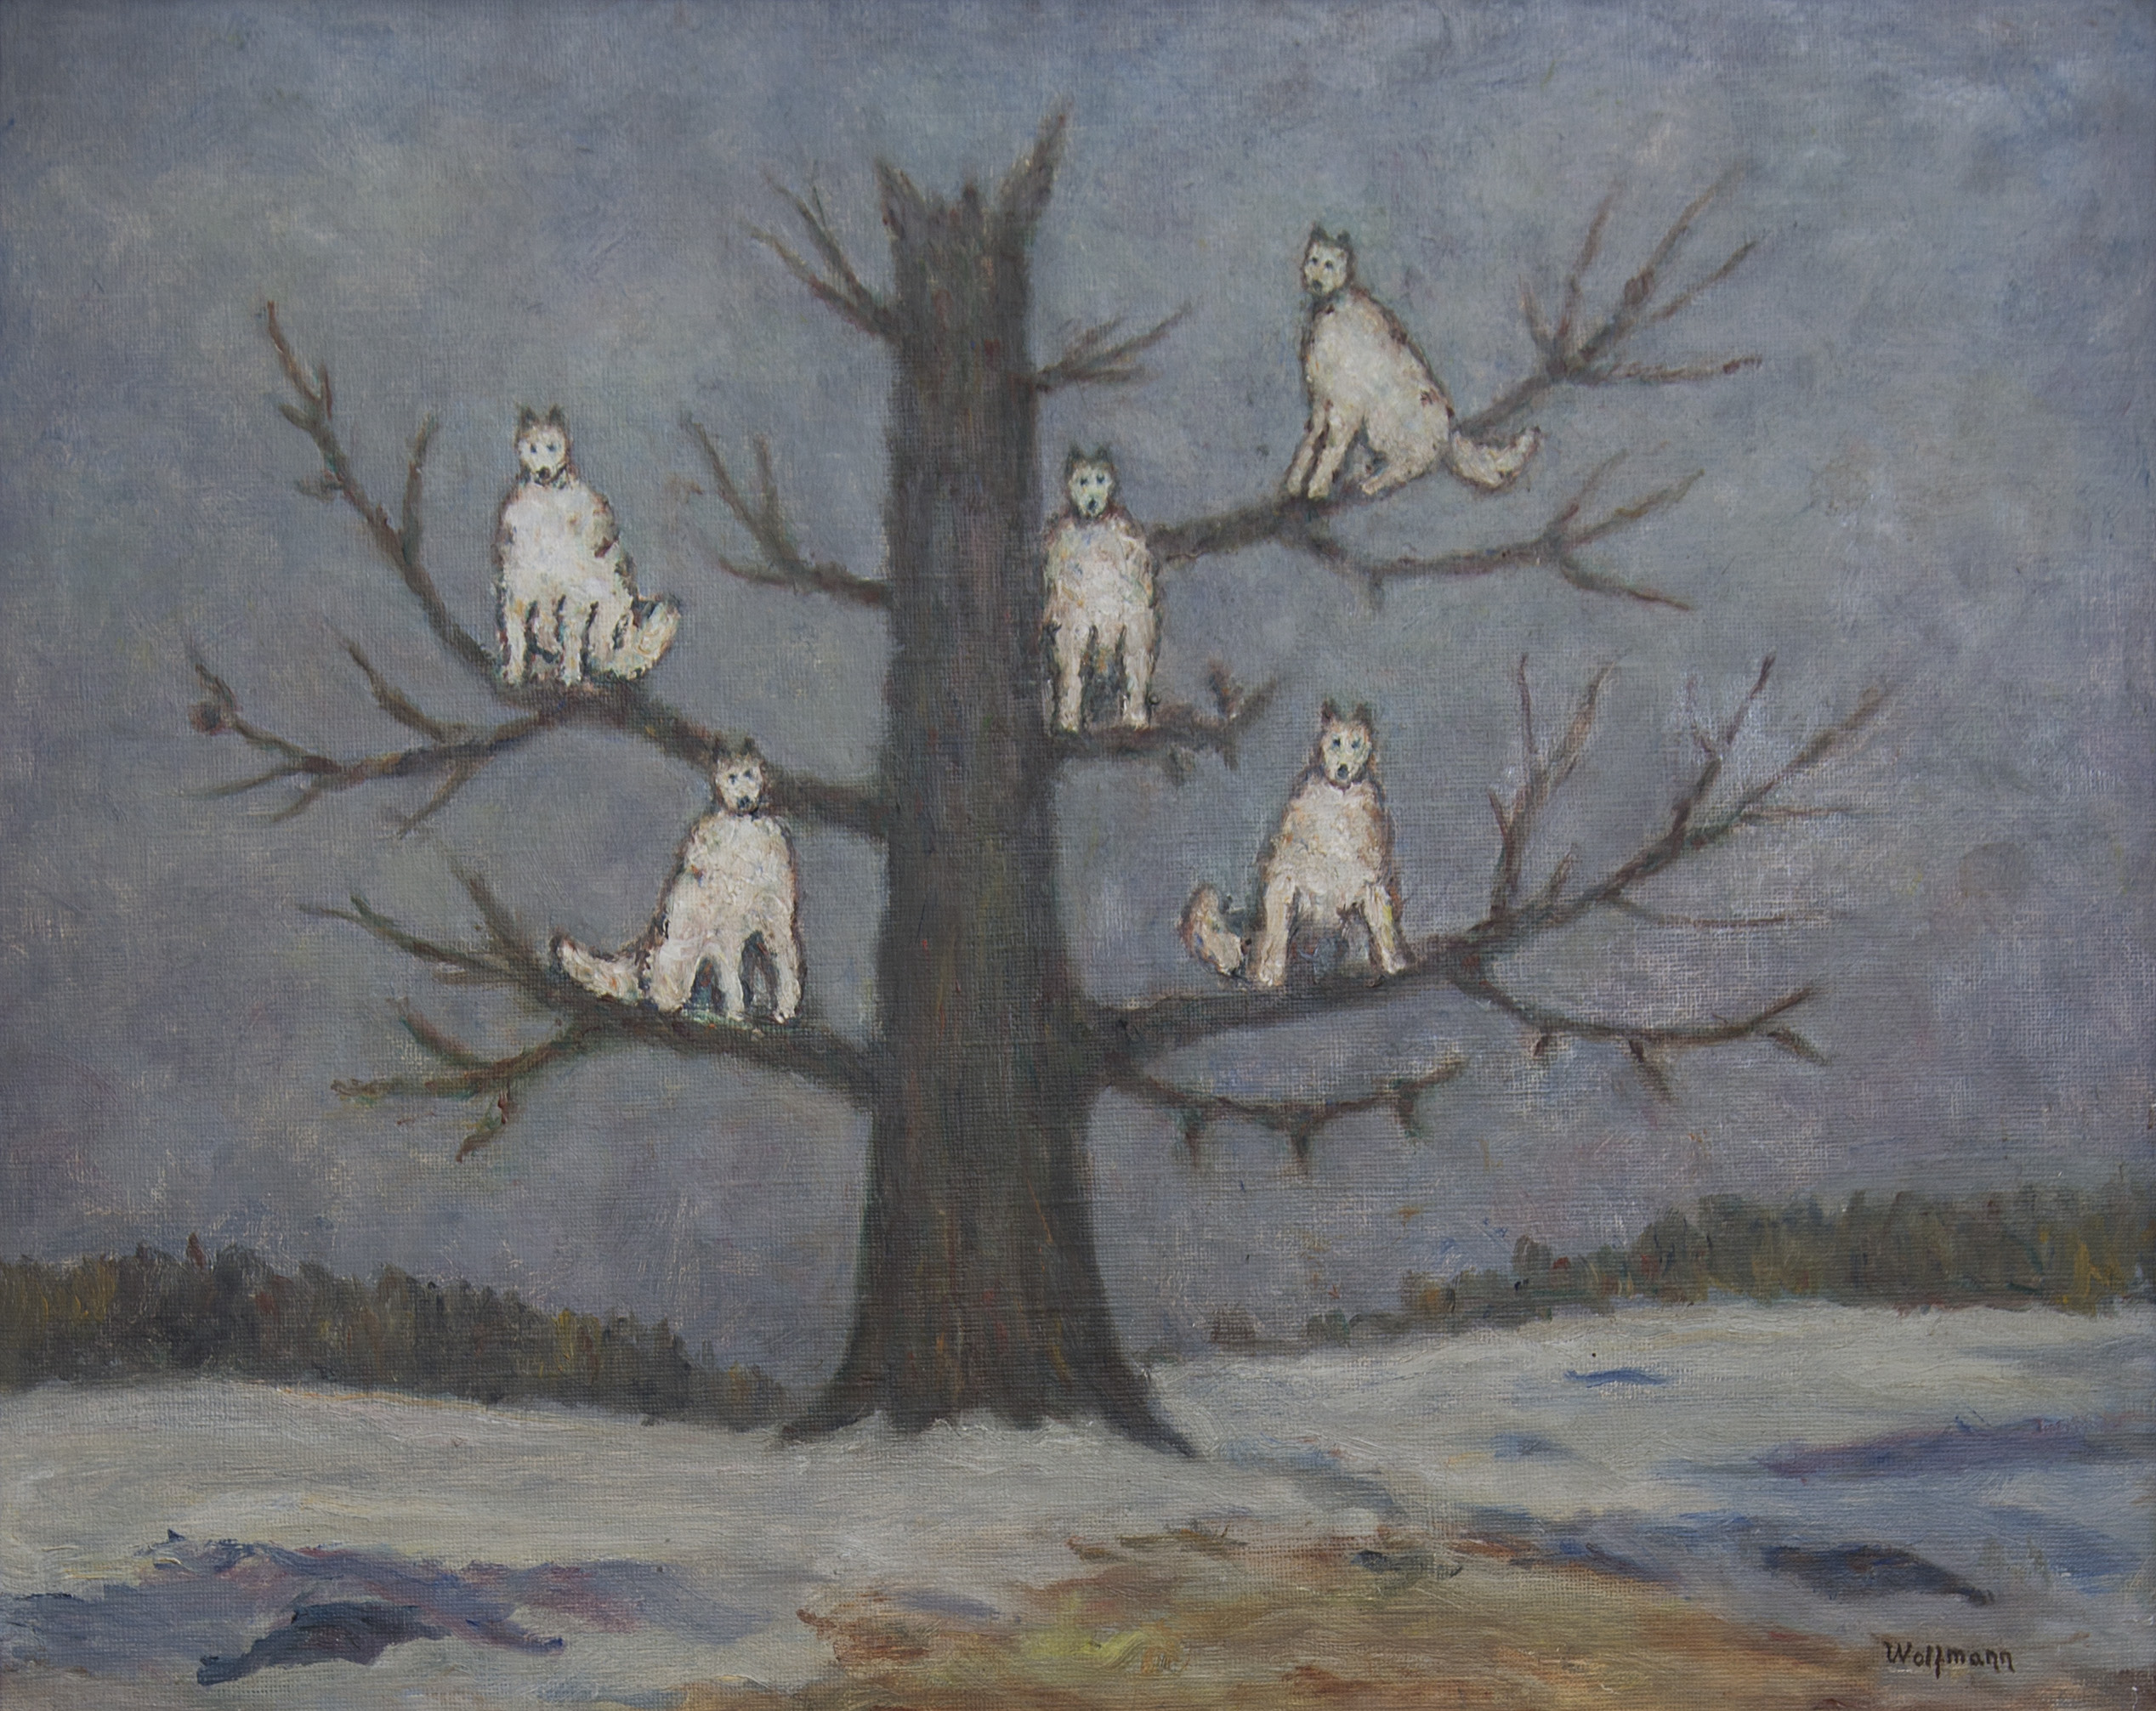 sergei-pankejeff-painting-of-wolves-sitting-in-a-tree-1975-courtesy-of-the-freud-museum-london